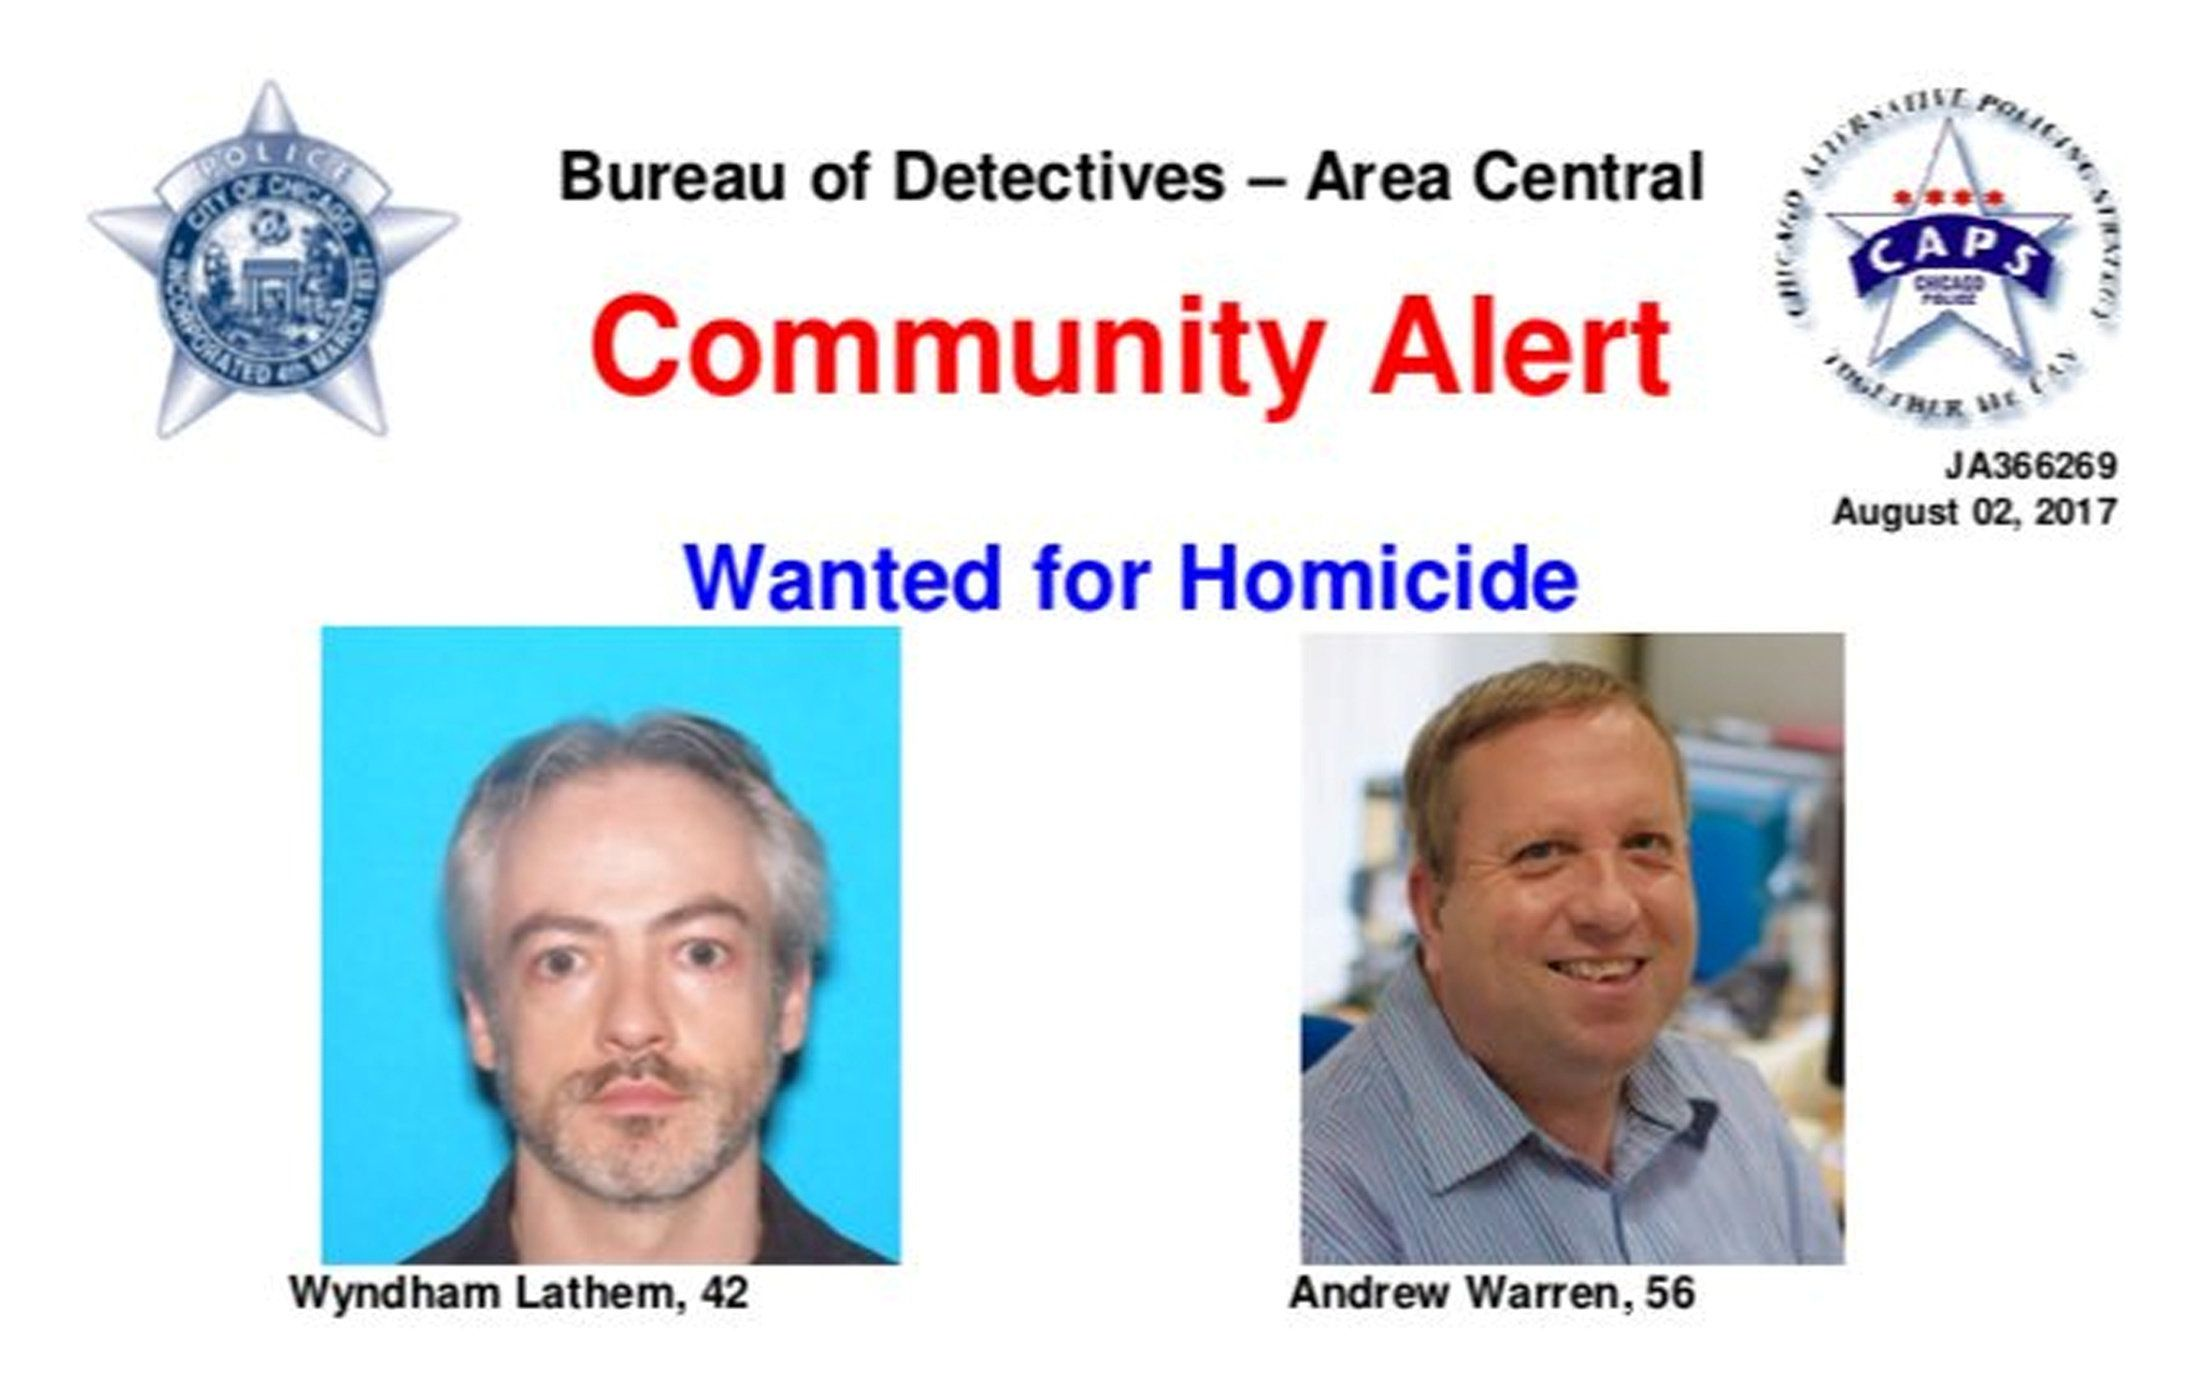 A wanted poster distributed by the Chicago Police Department shows suspects Wyndham Lathem, 42, and Andrew...